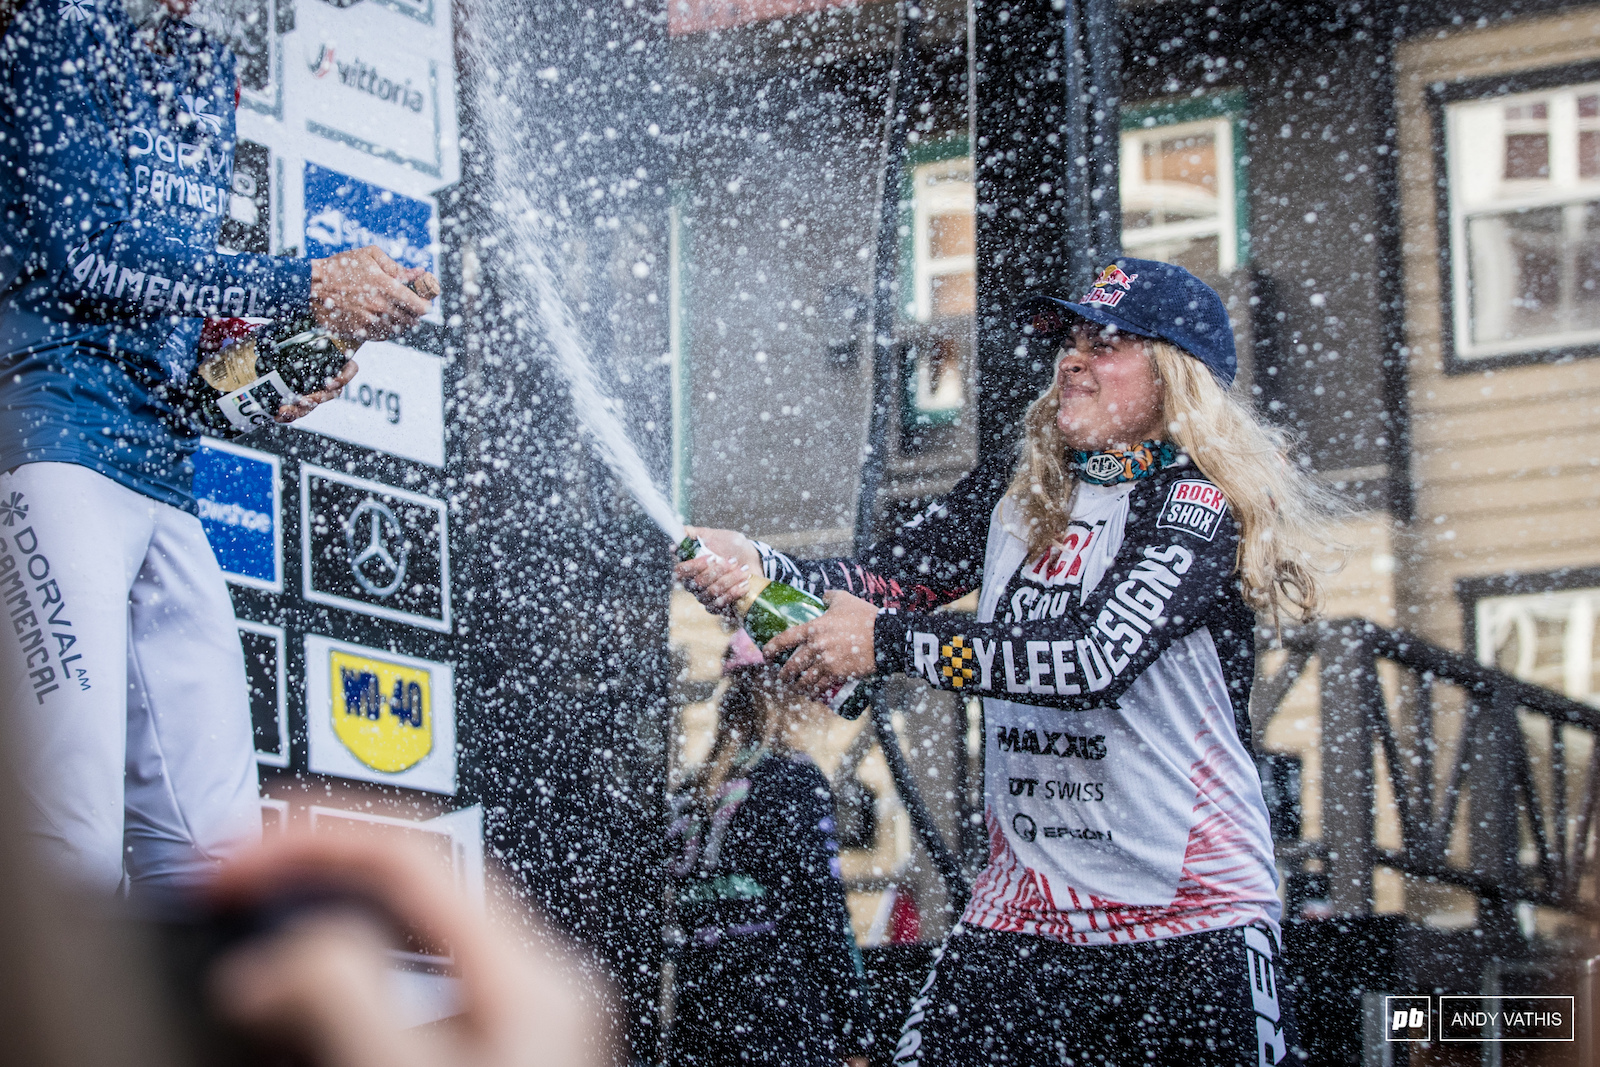 Two wins here in West Virginia for Vali Holl and the overall title. Lots of champagne forecasted in the near future for her.